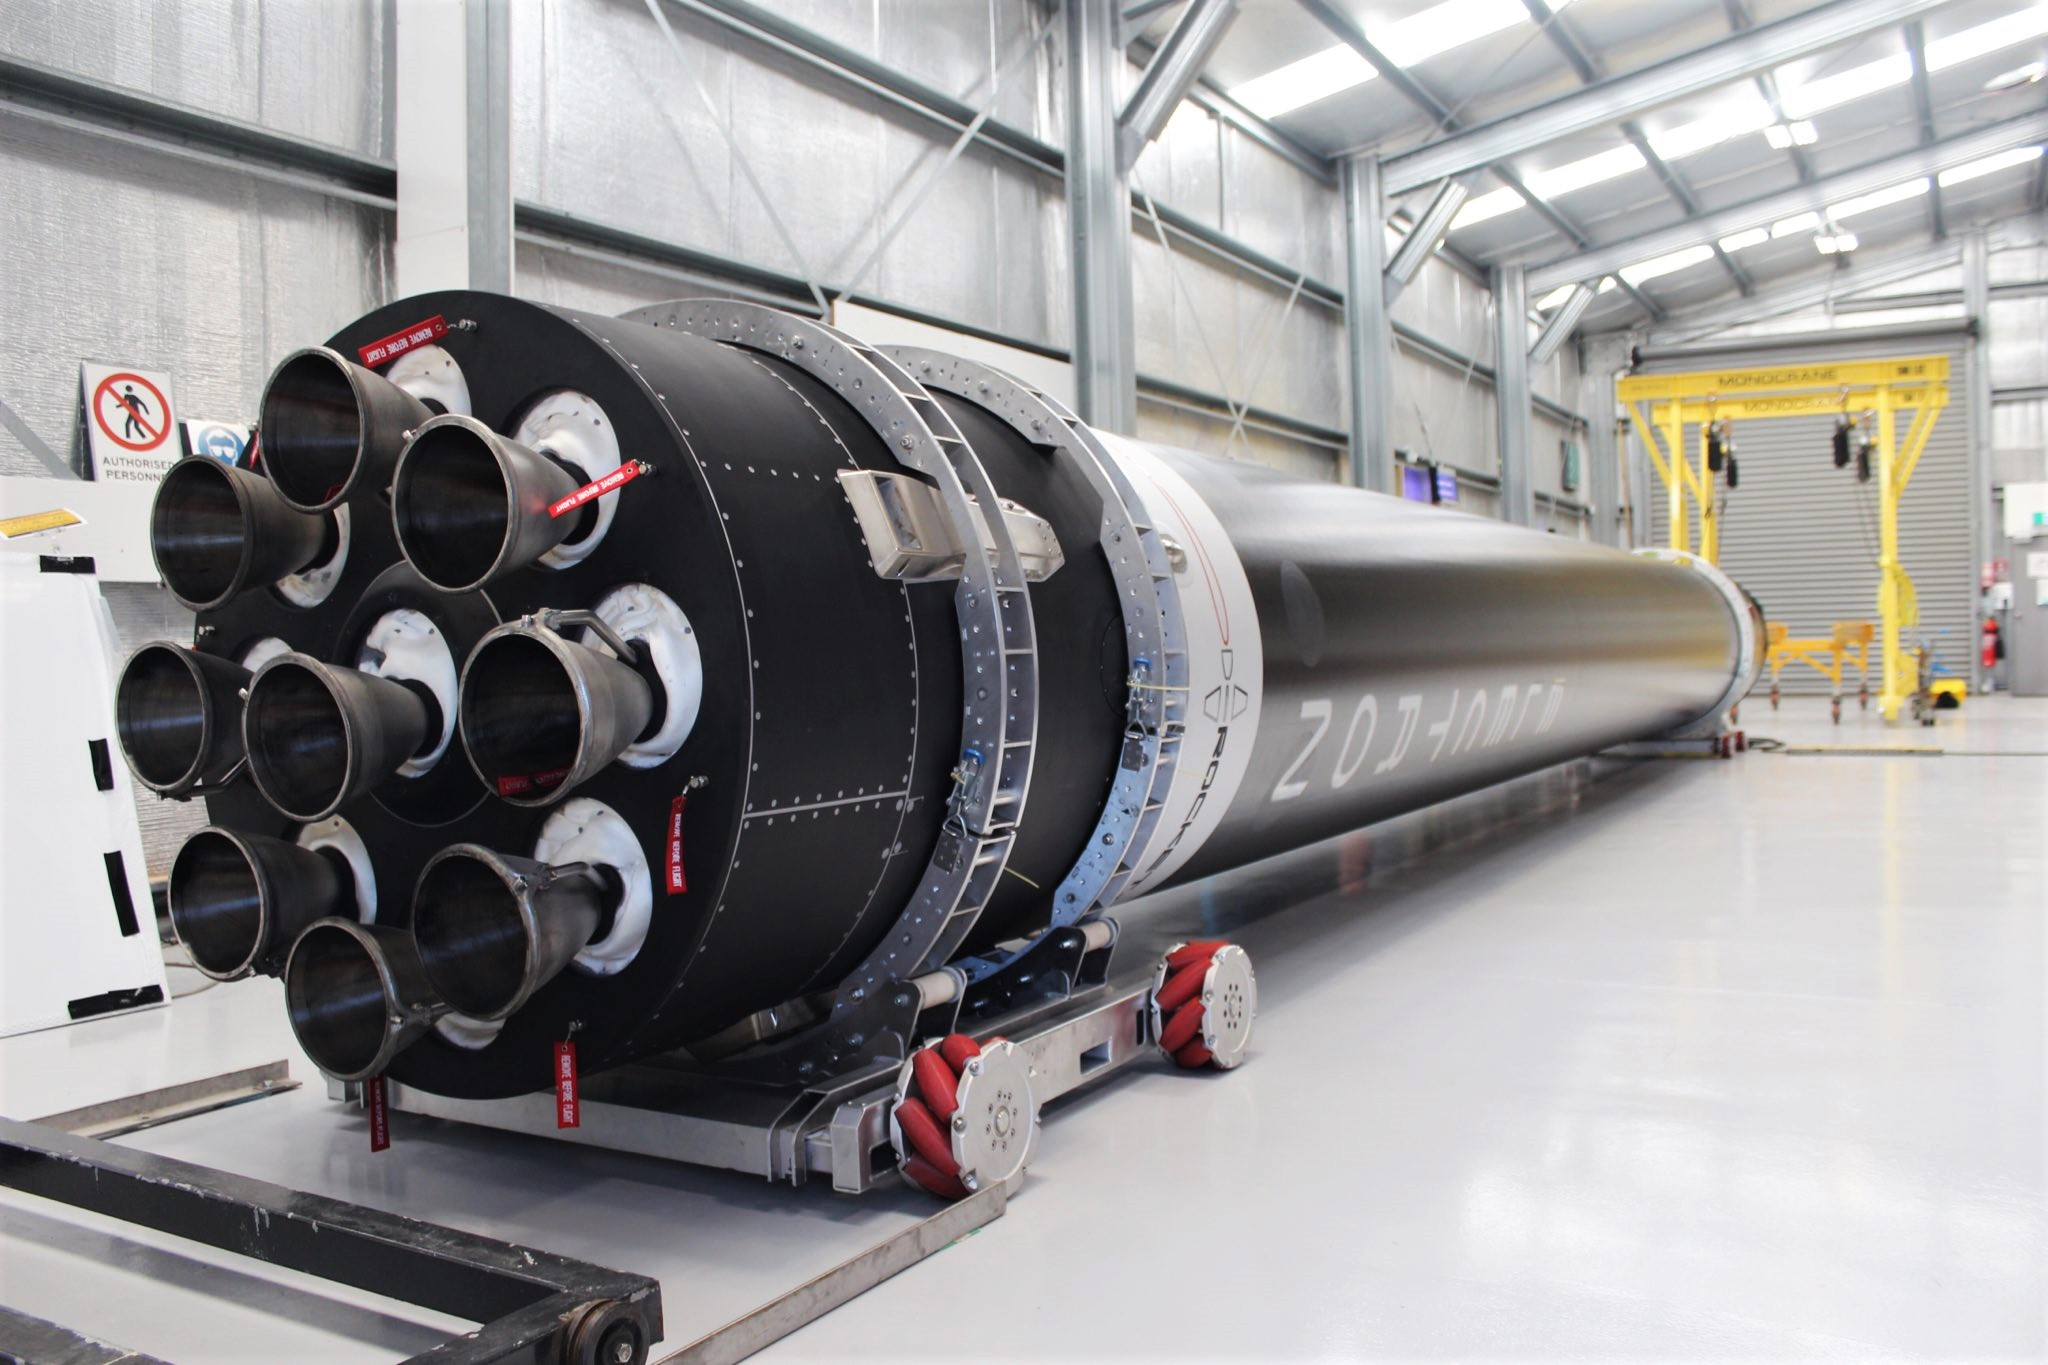 Electron Flight 9 booster LC-1 091219 (Rocket Lab) 1